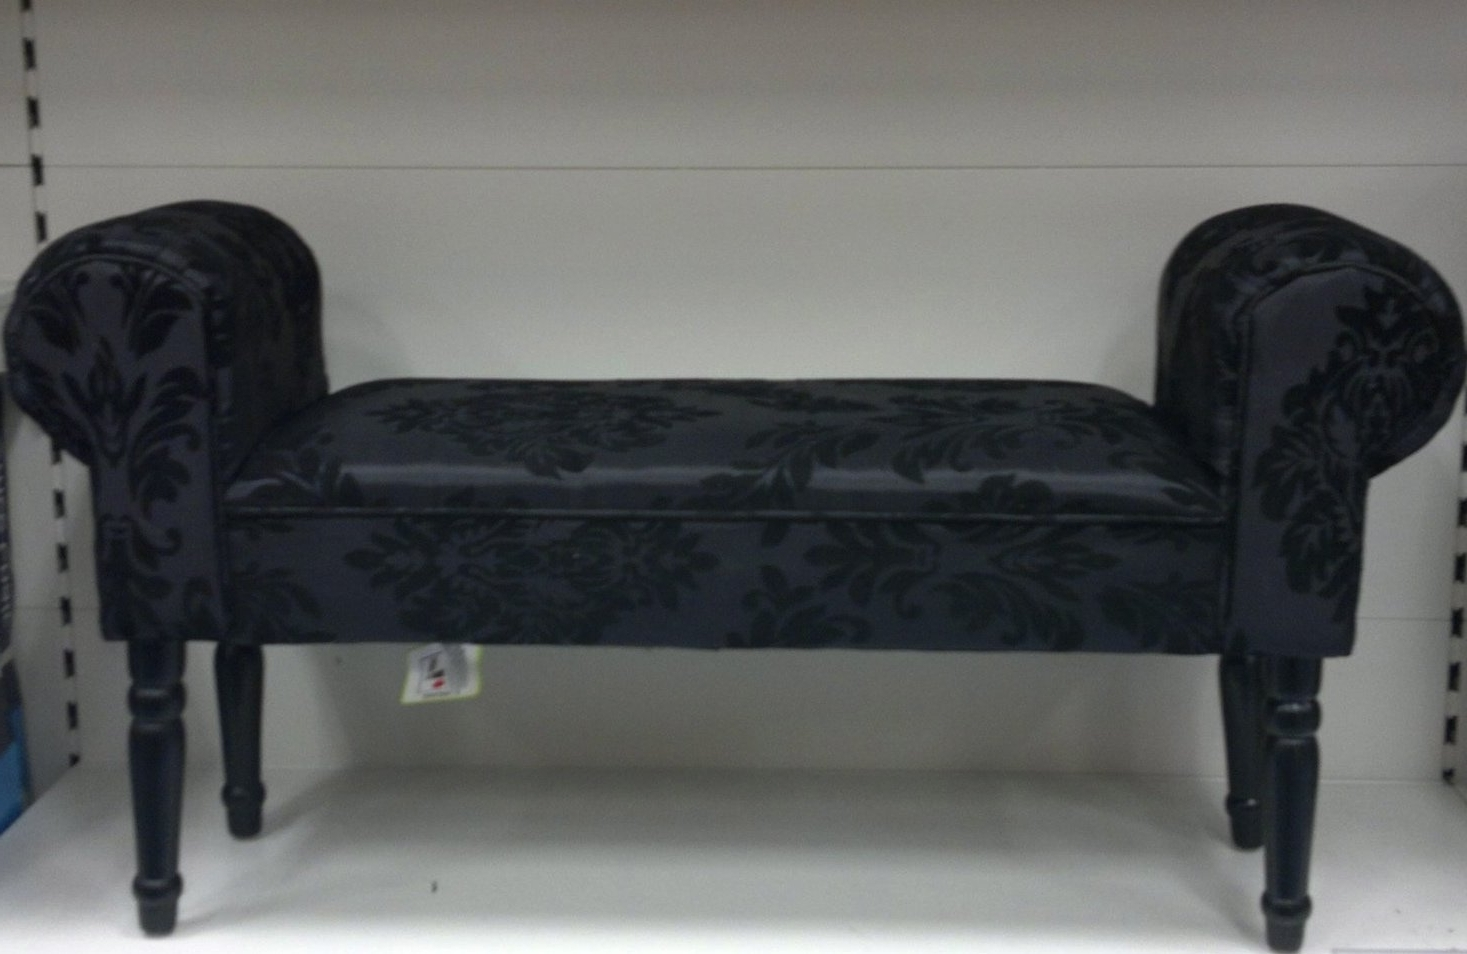 Well Known Black Chaise Lounges Regarding Black Damask Chaise Longue: Amazon.co (View 15 of 15)